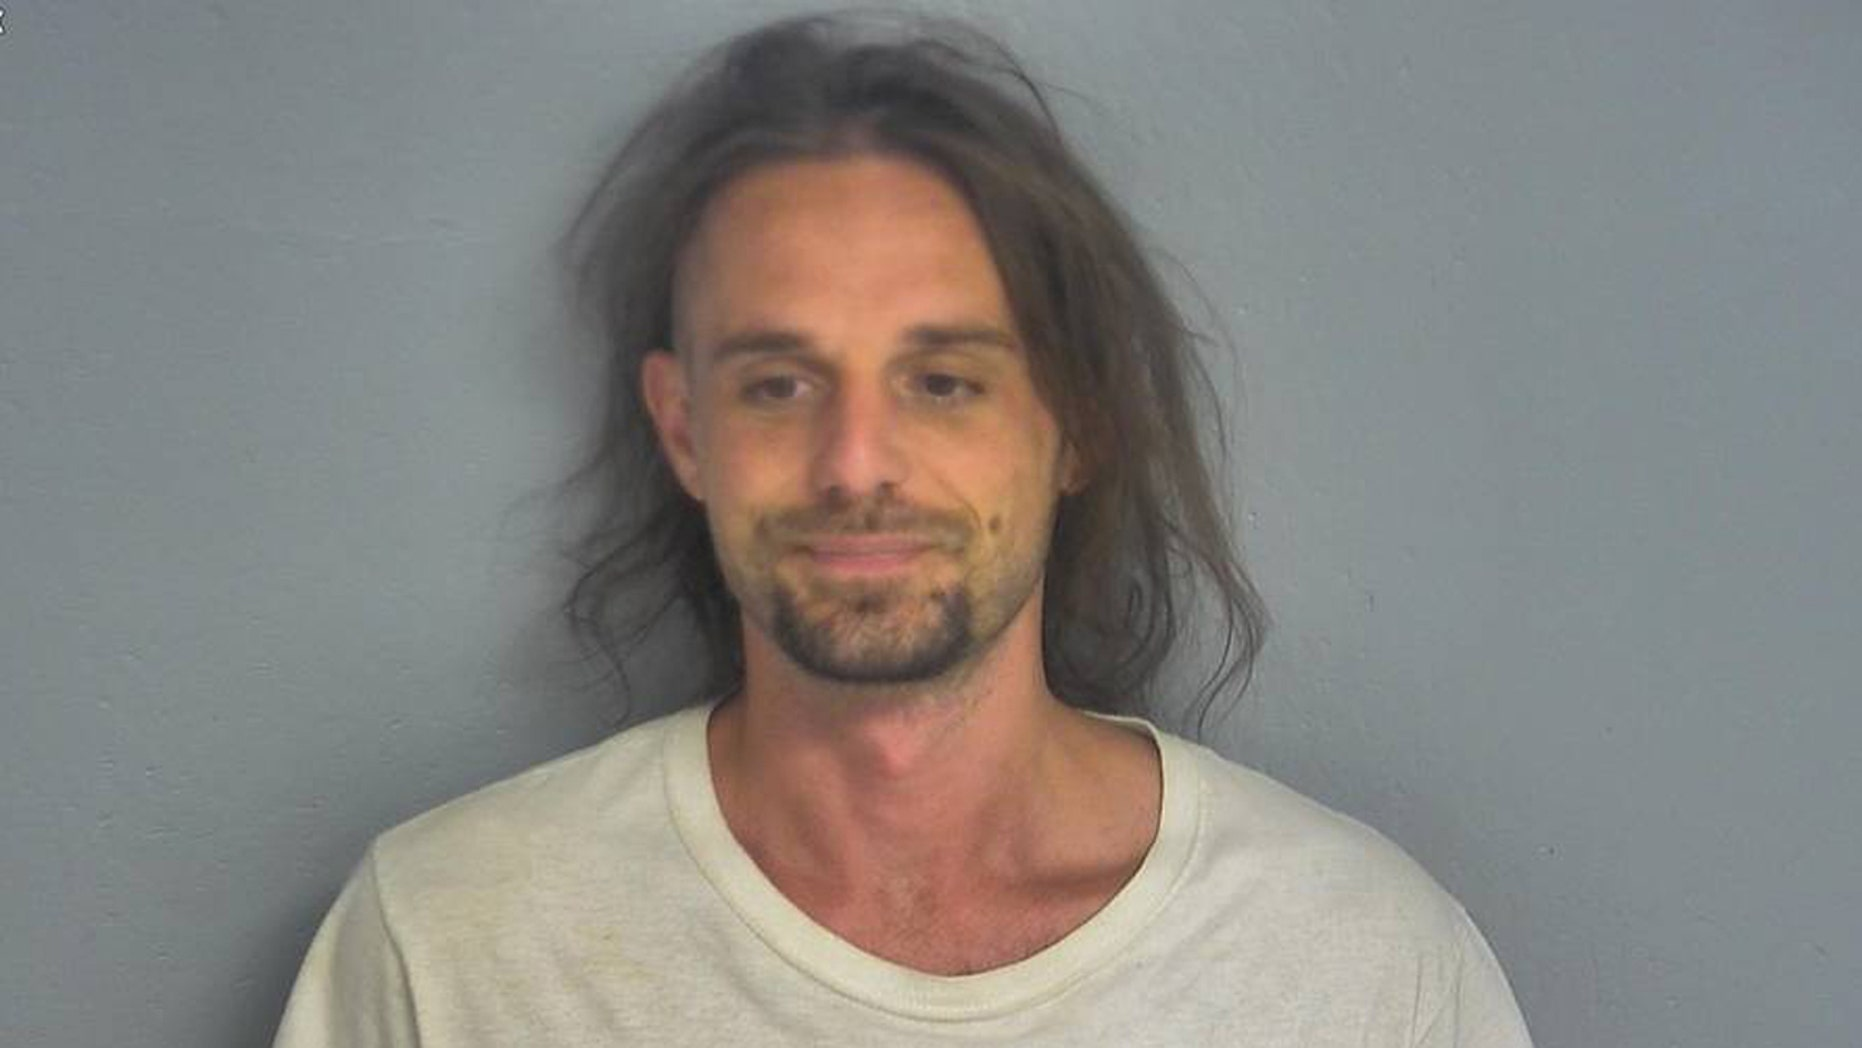 Dustin Burns, 33, is charged with a felony after recording a video of himself removing his ankle monitor, officials said.